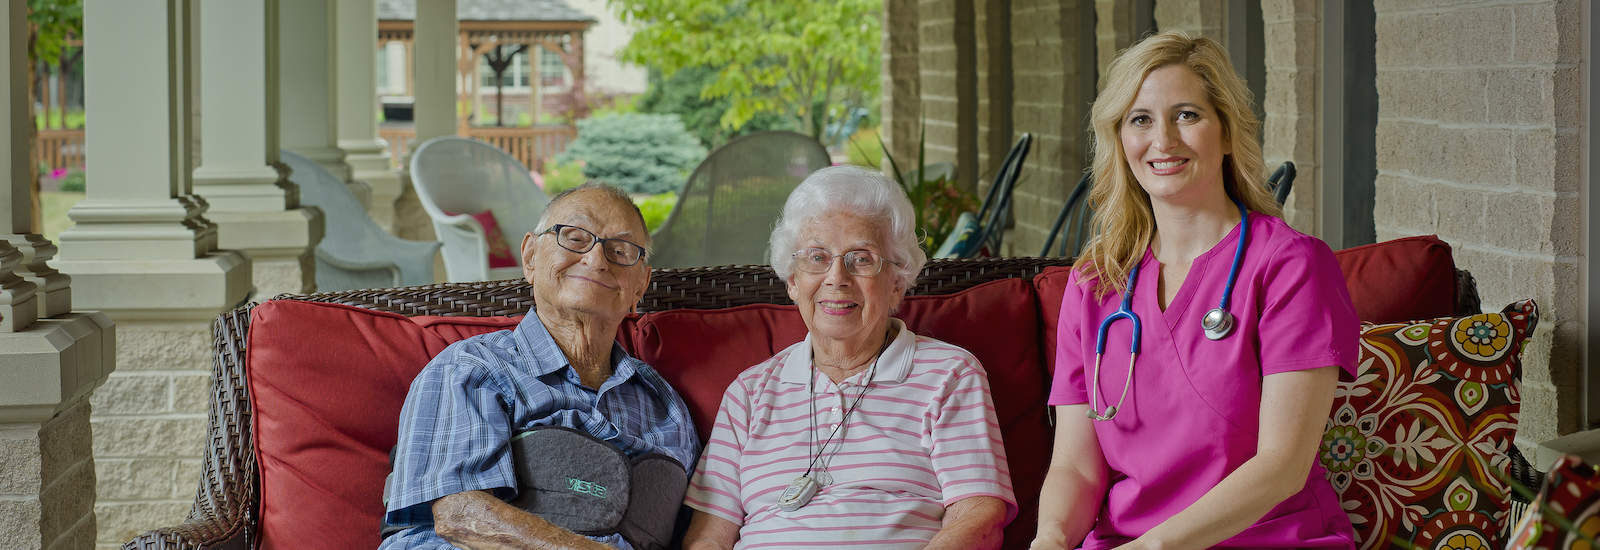 caregiver with residents